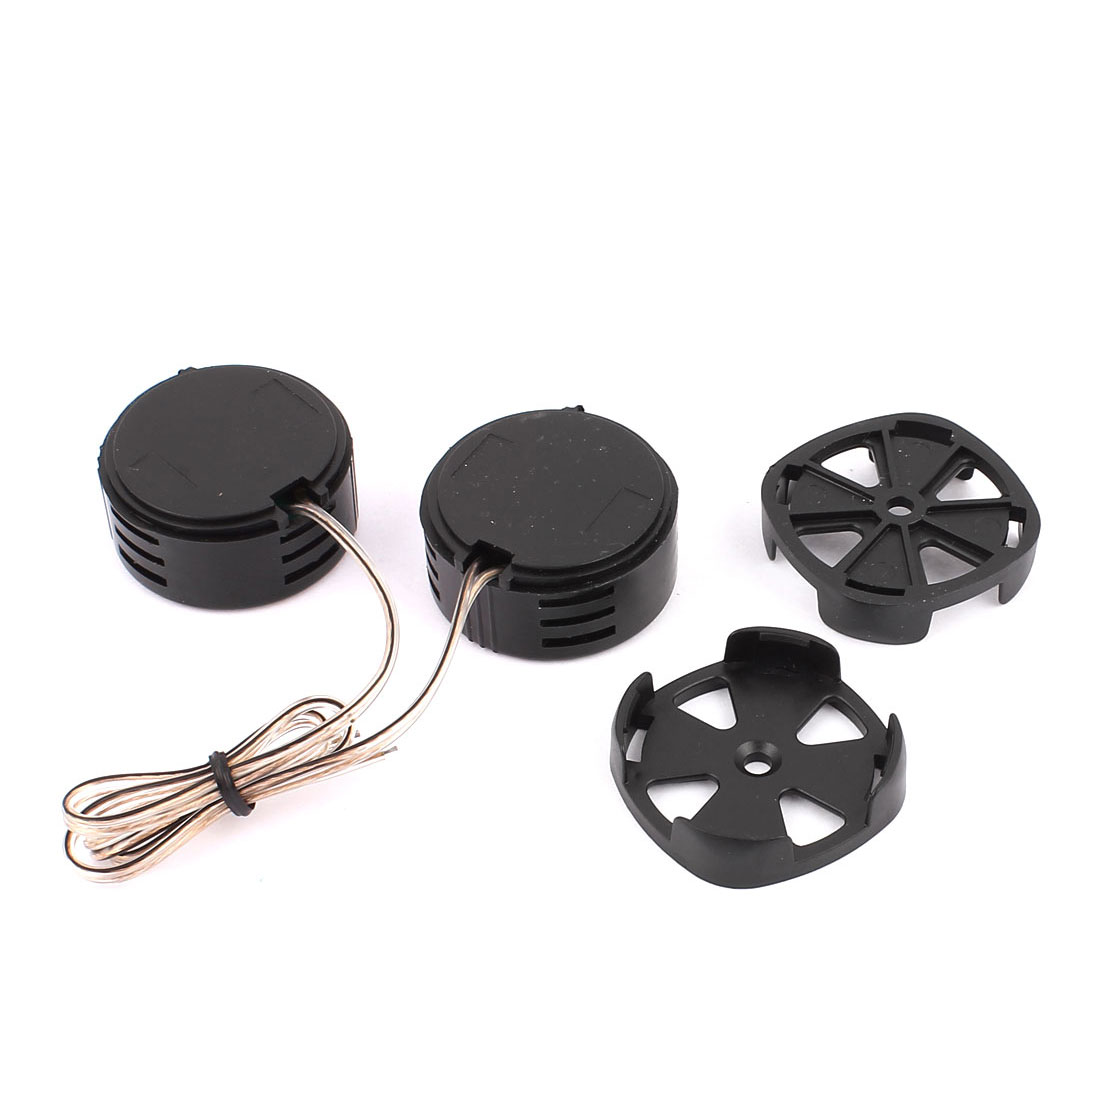 2pcs Plastic Shell Audio Speaker Dome Tweeter 500W 97dB Black for Auto Car